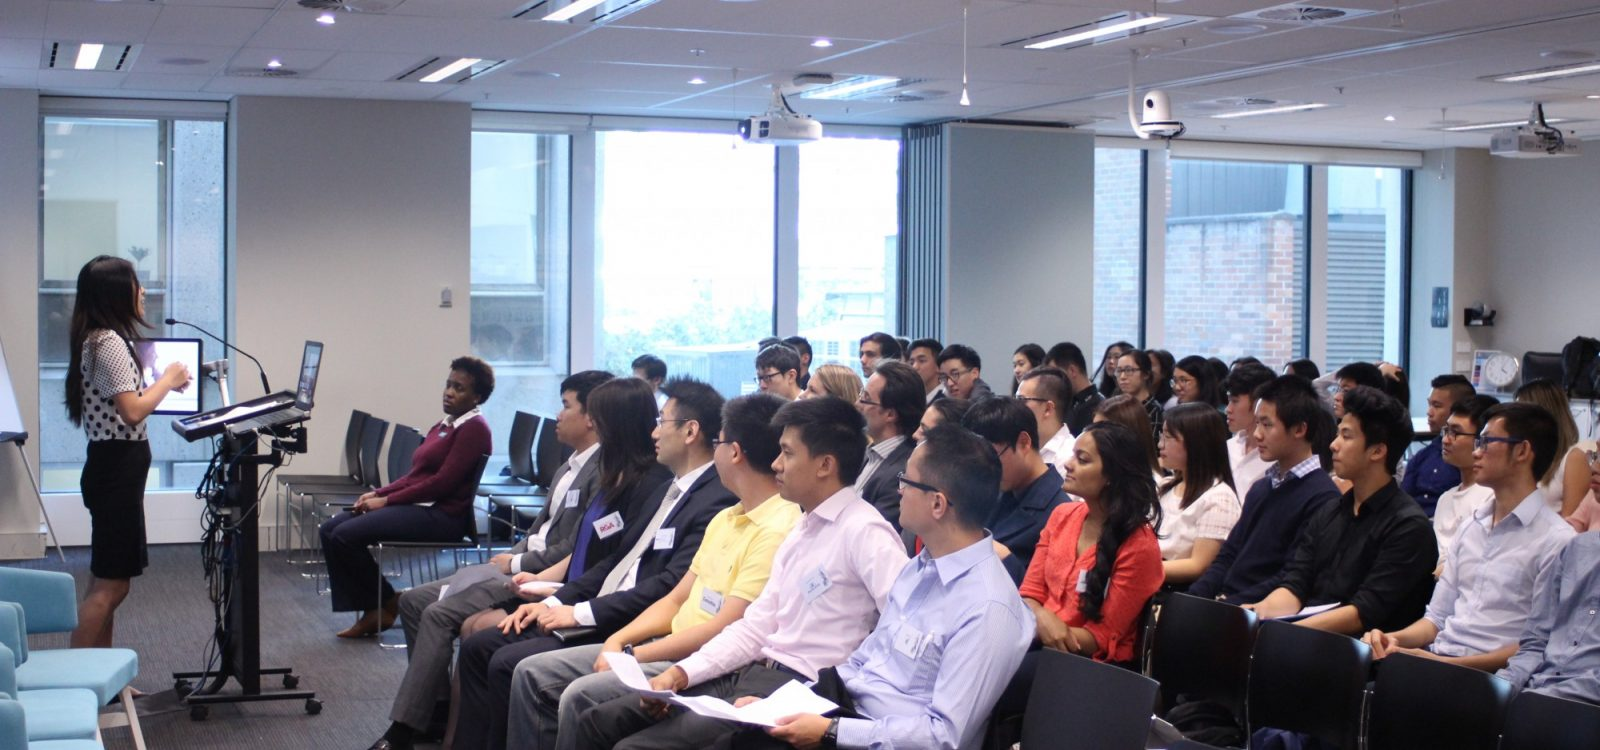 ASOC Actuarial Pathways Networking Event – An Overview